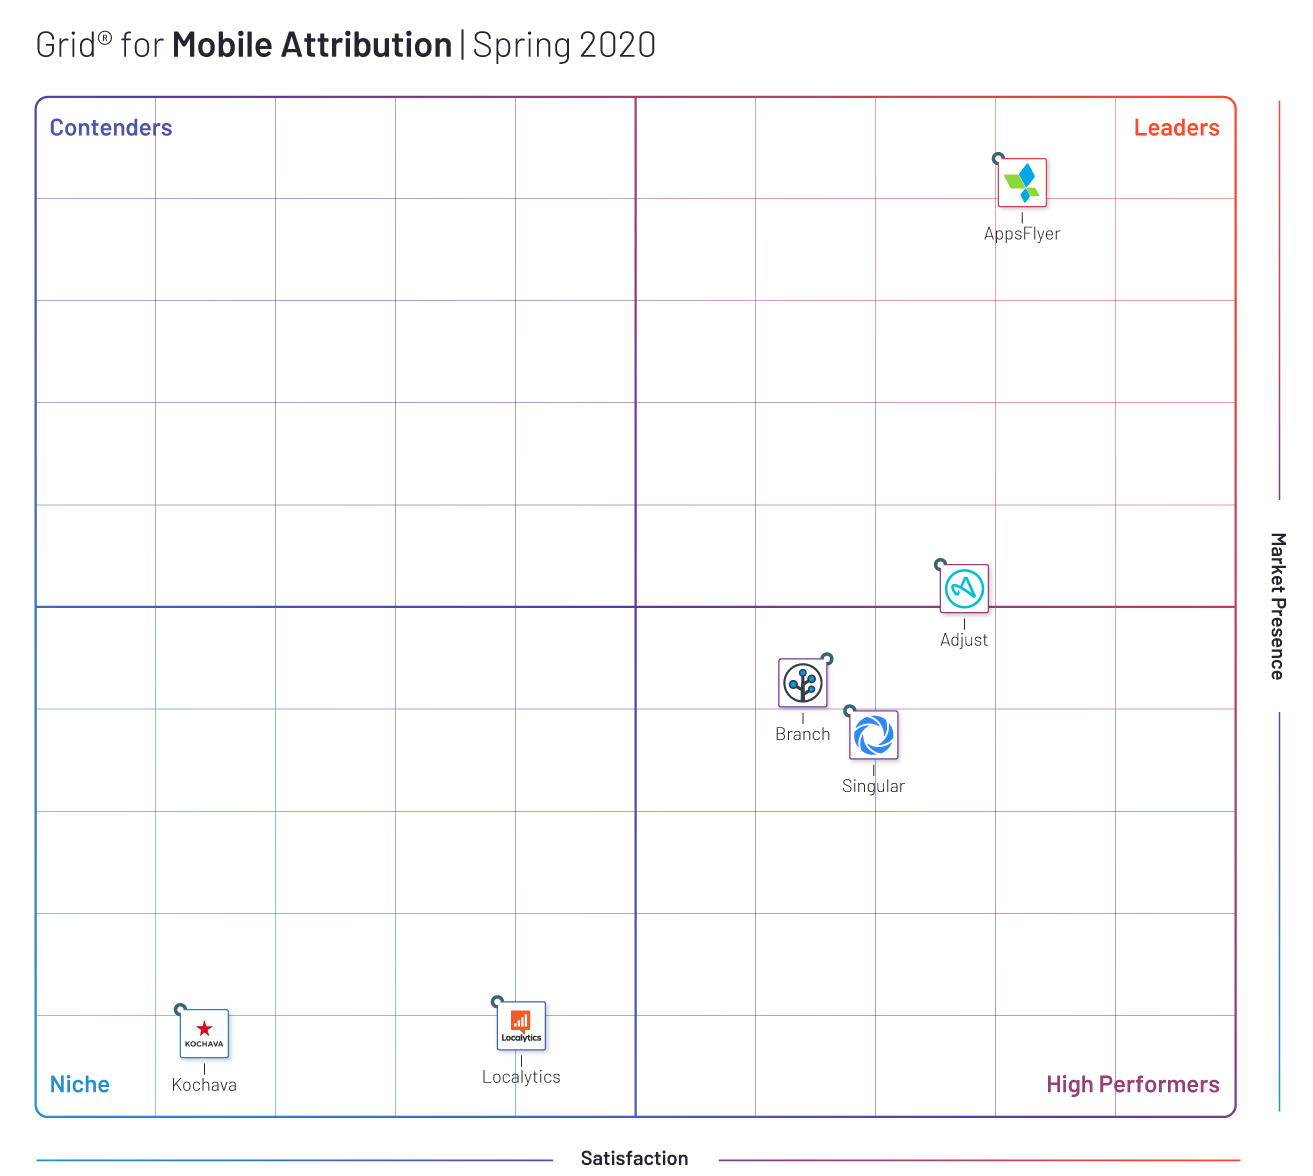 AppsFlyer is the clear industry leader in mobile attribution